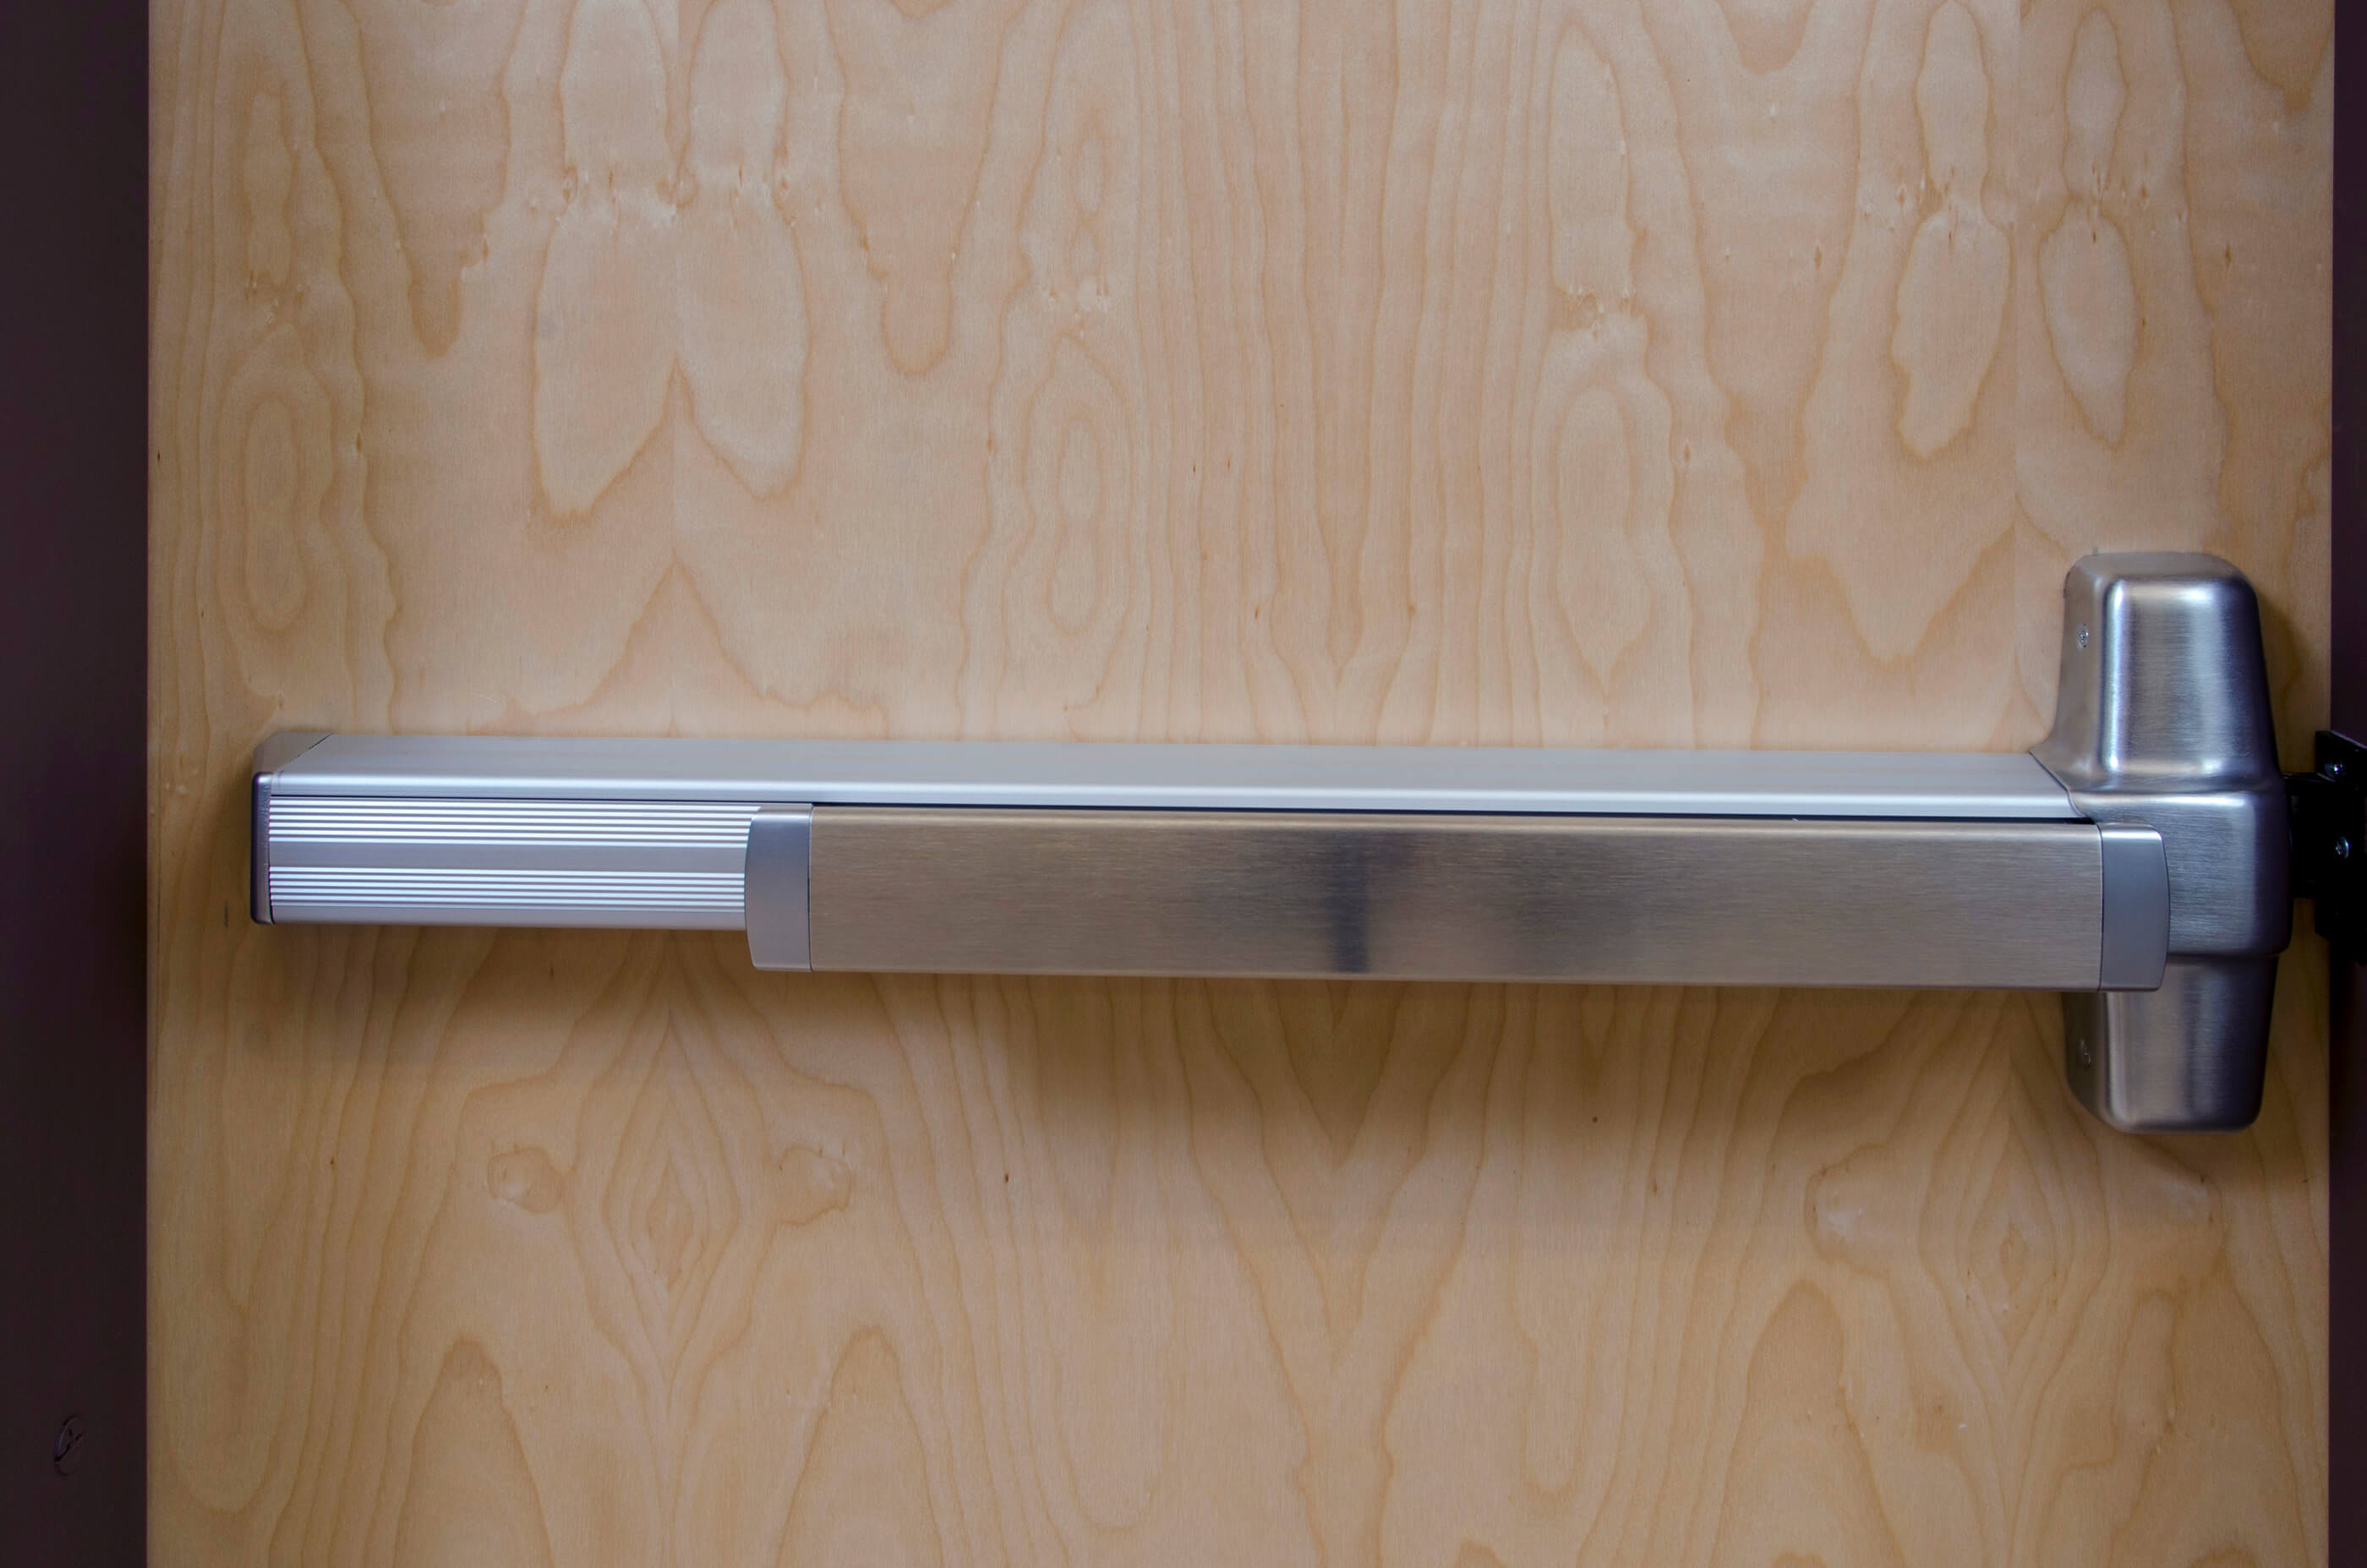 Photo of commercial door panic hardware